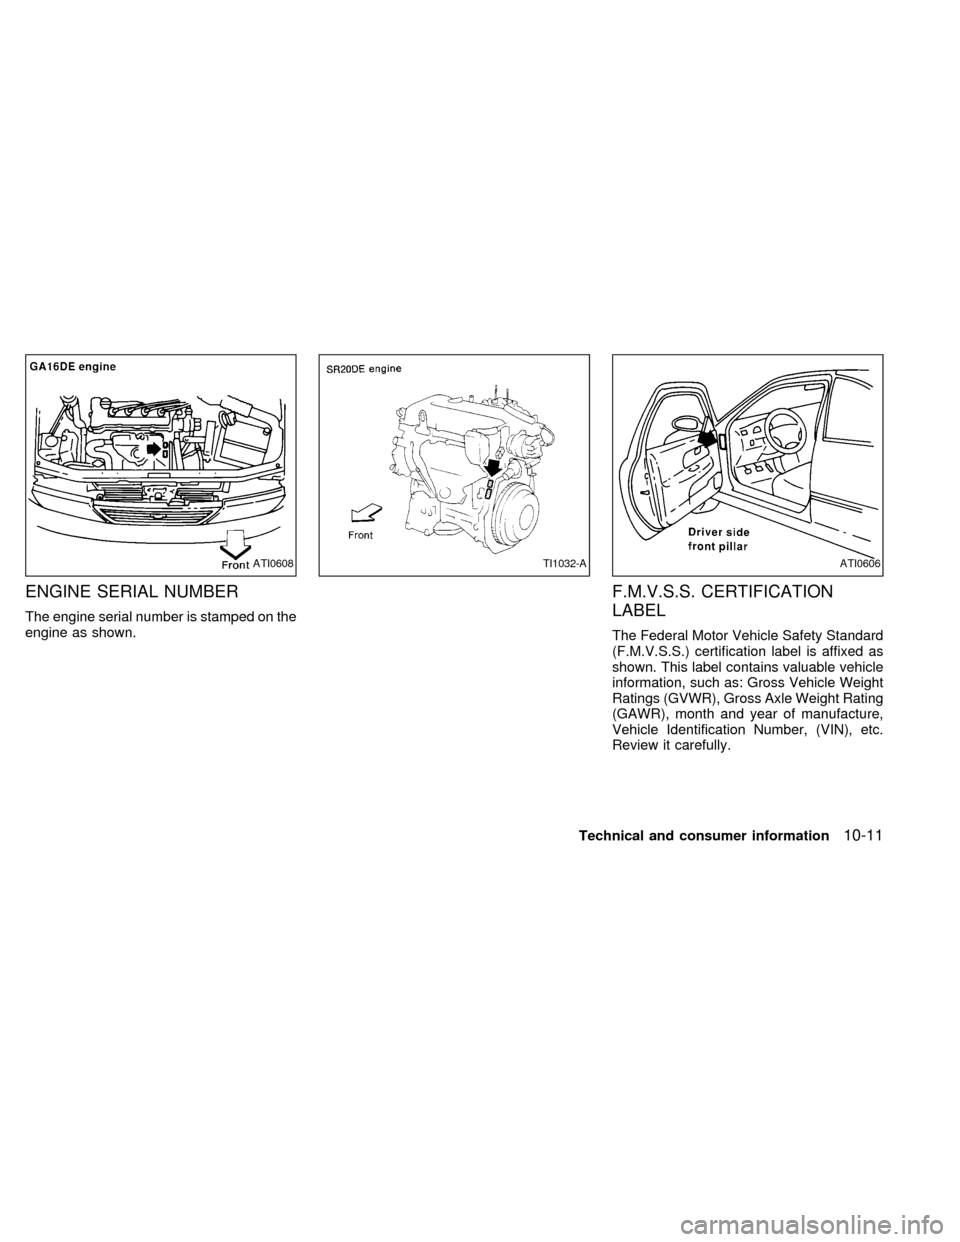 NISSAN SENTRA 1998 B14 / 4.G Owners Manual